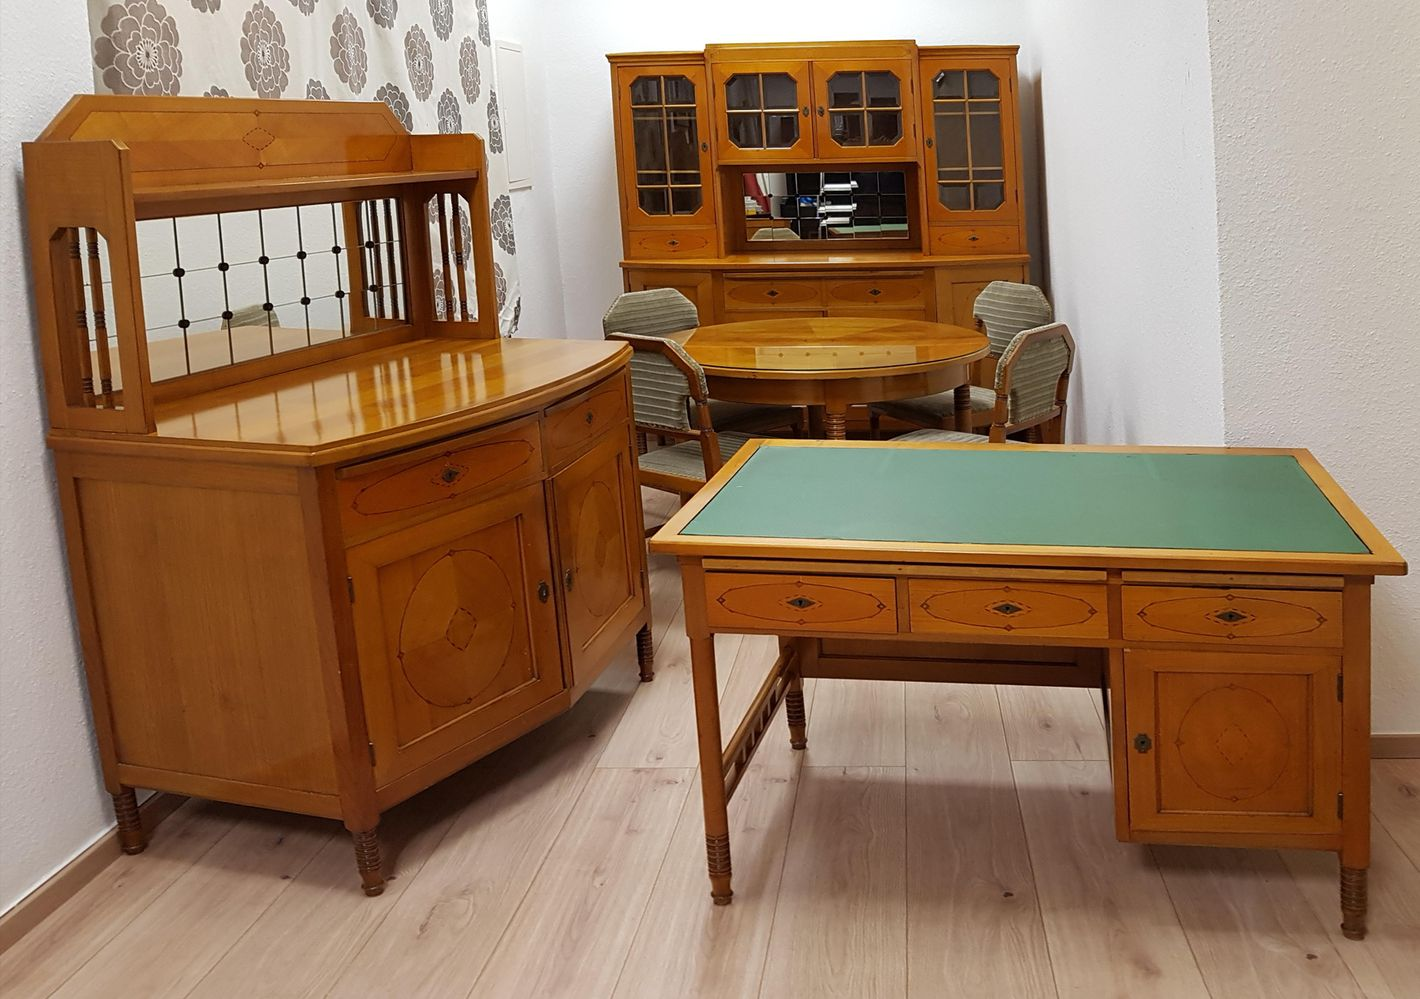 Antique Cherry Wood Dining Room Set for sale at Pamono